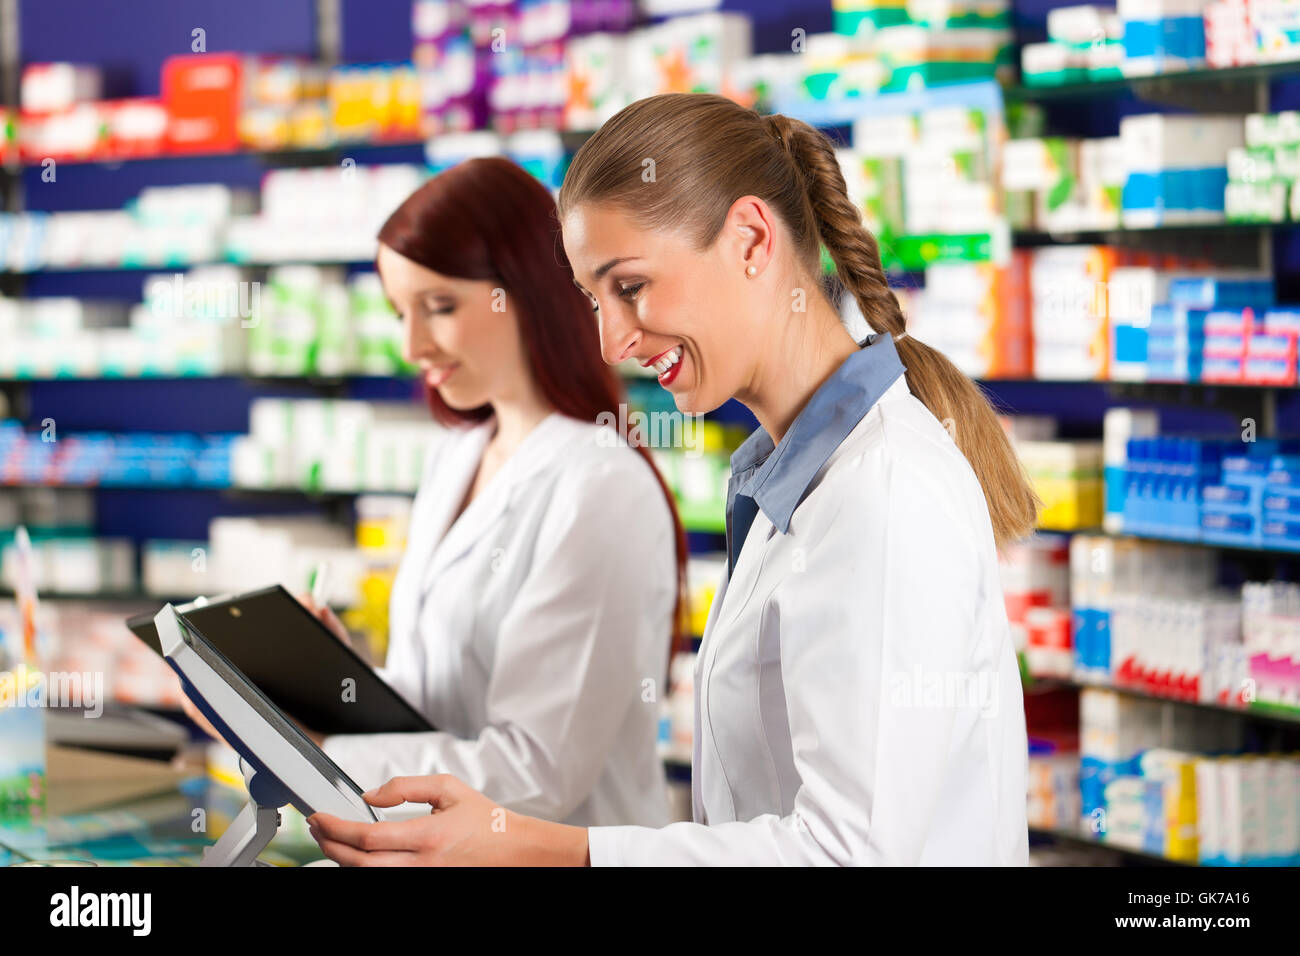 pharmacist with assistant in pharmacy drugstore - Stock Image